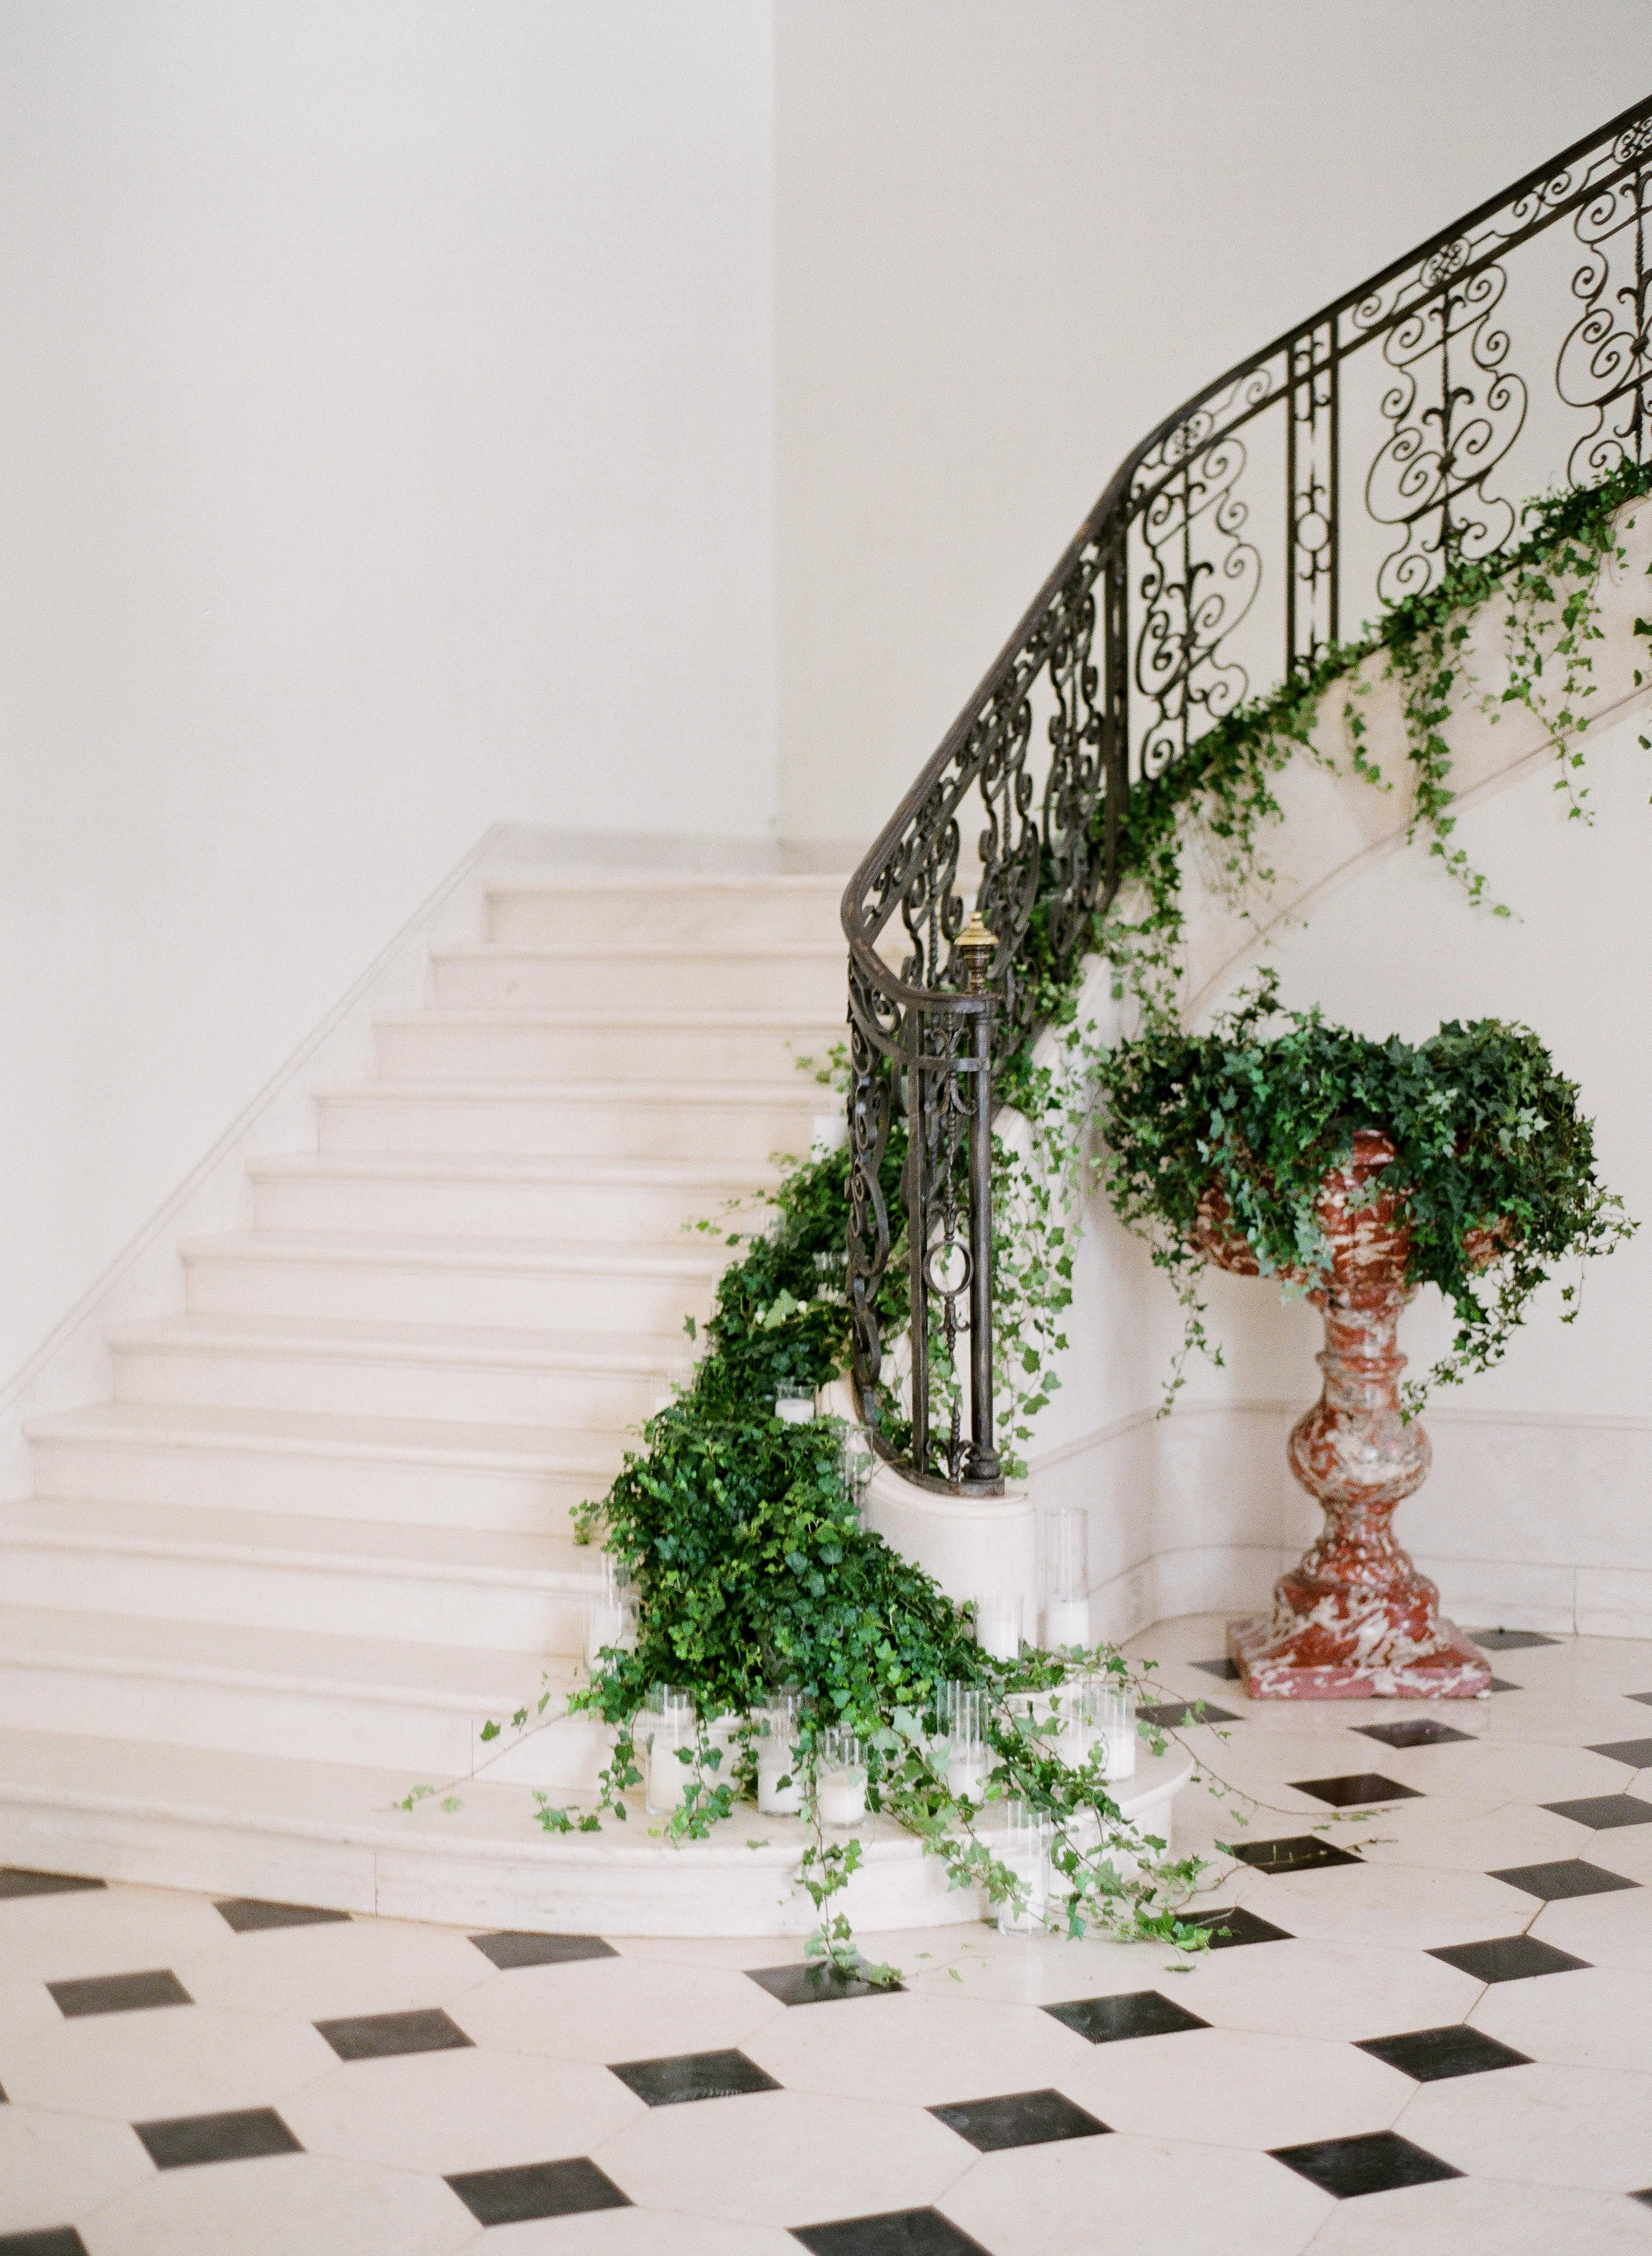 stair banister decor overflowing english ivy